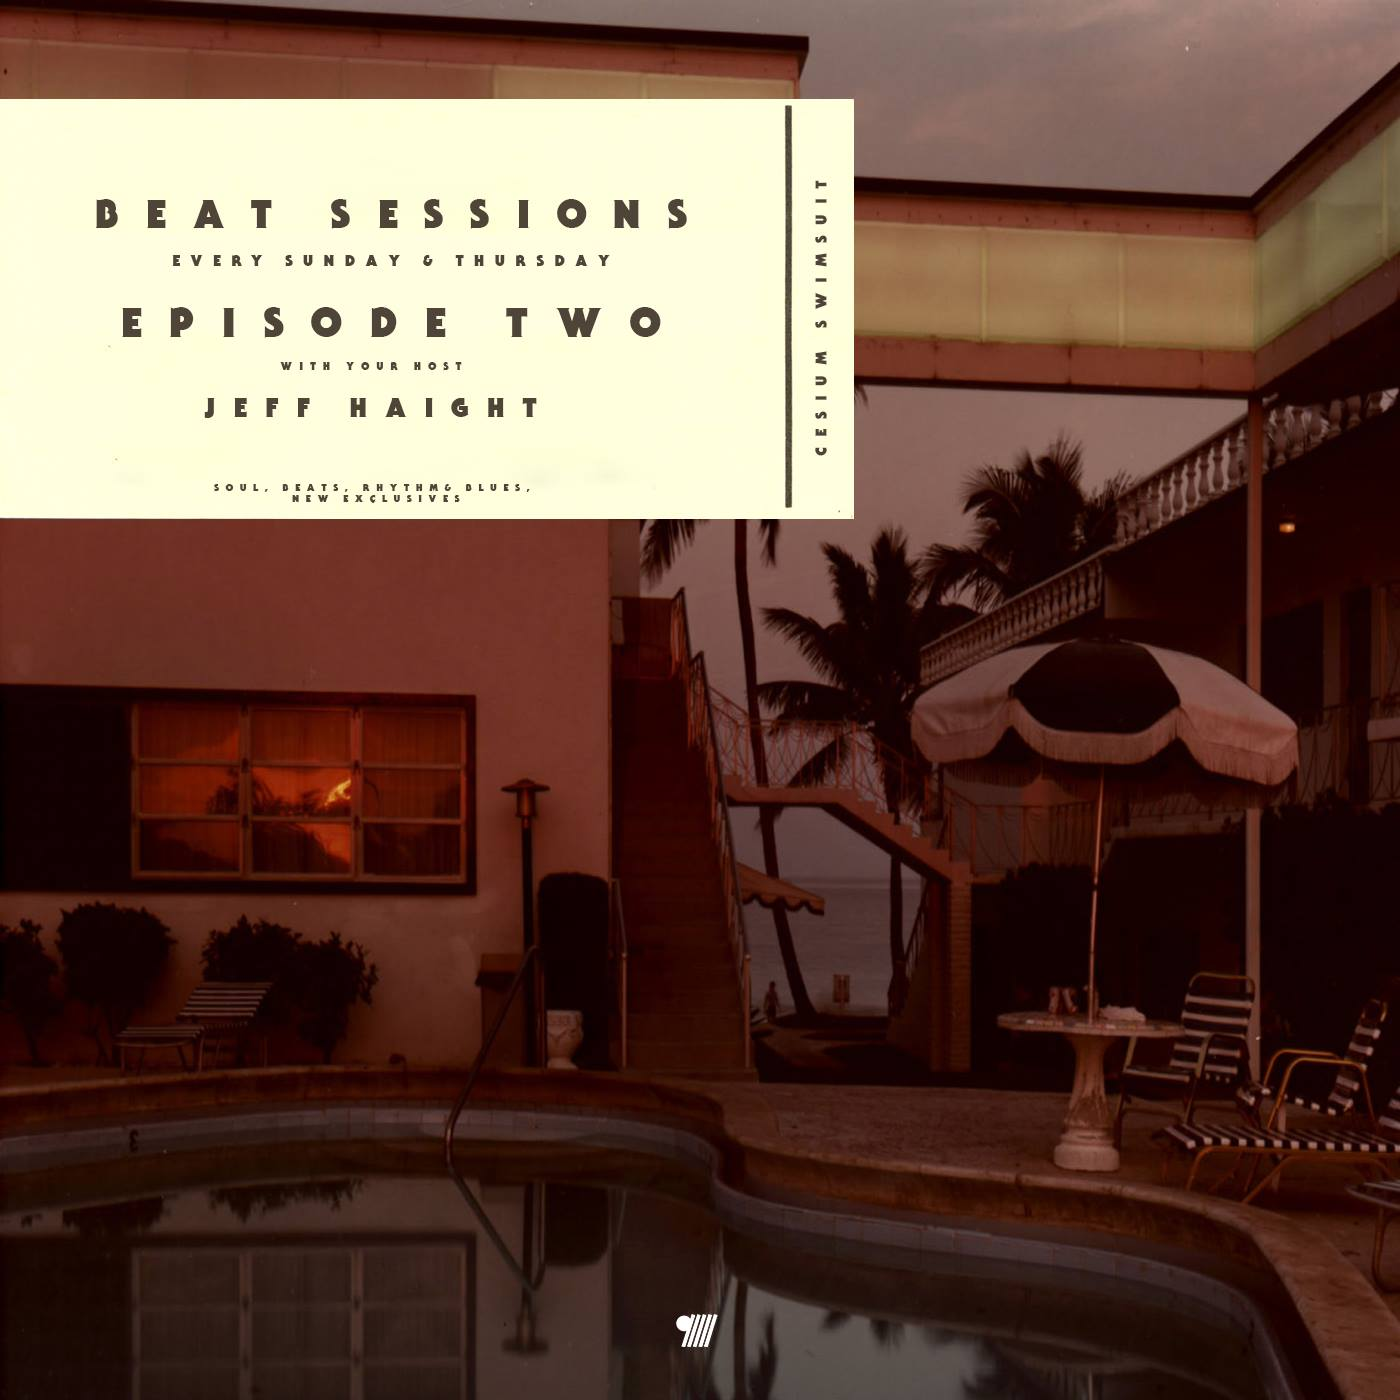 Beat Sessions: Episode Two - With Jeff Haight